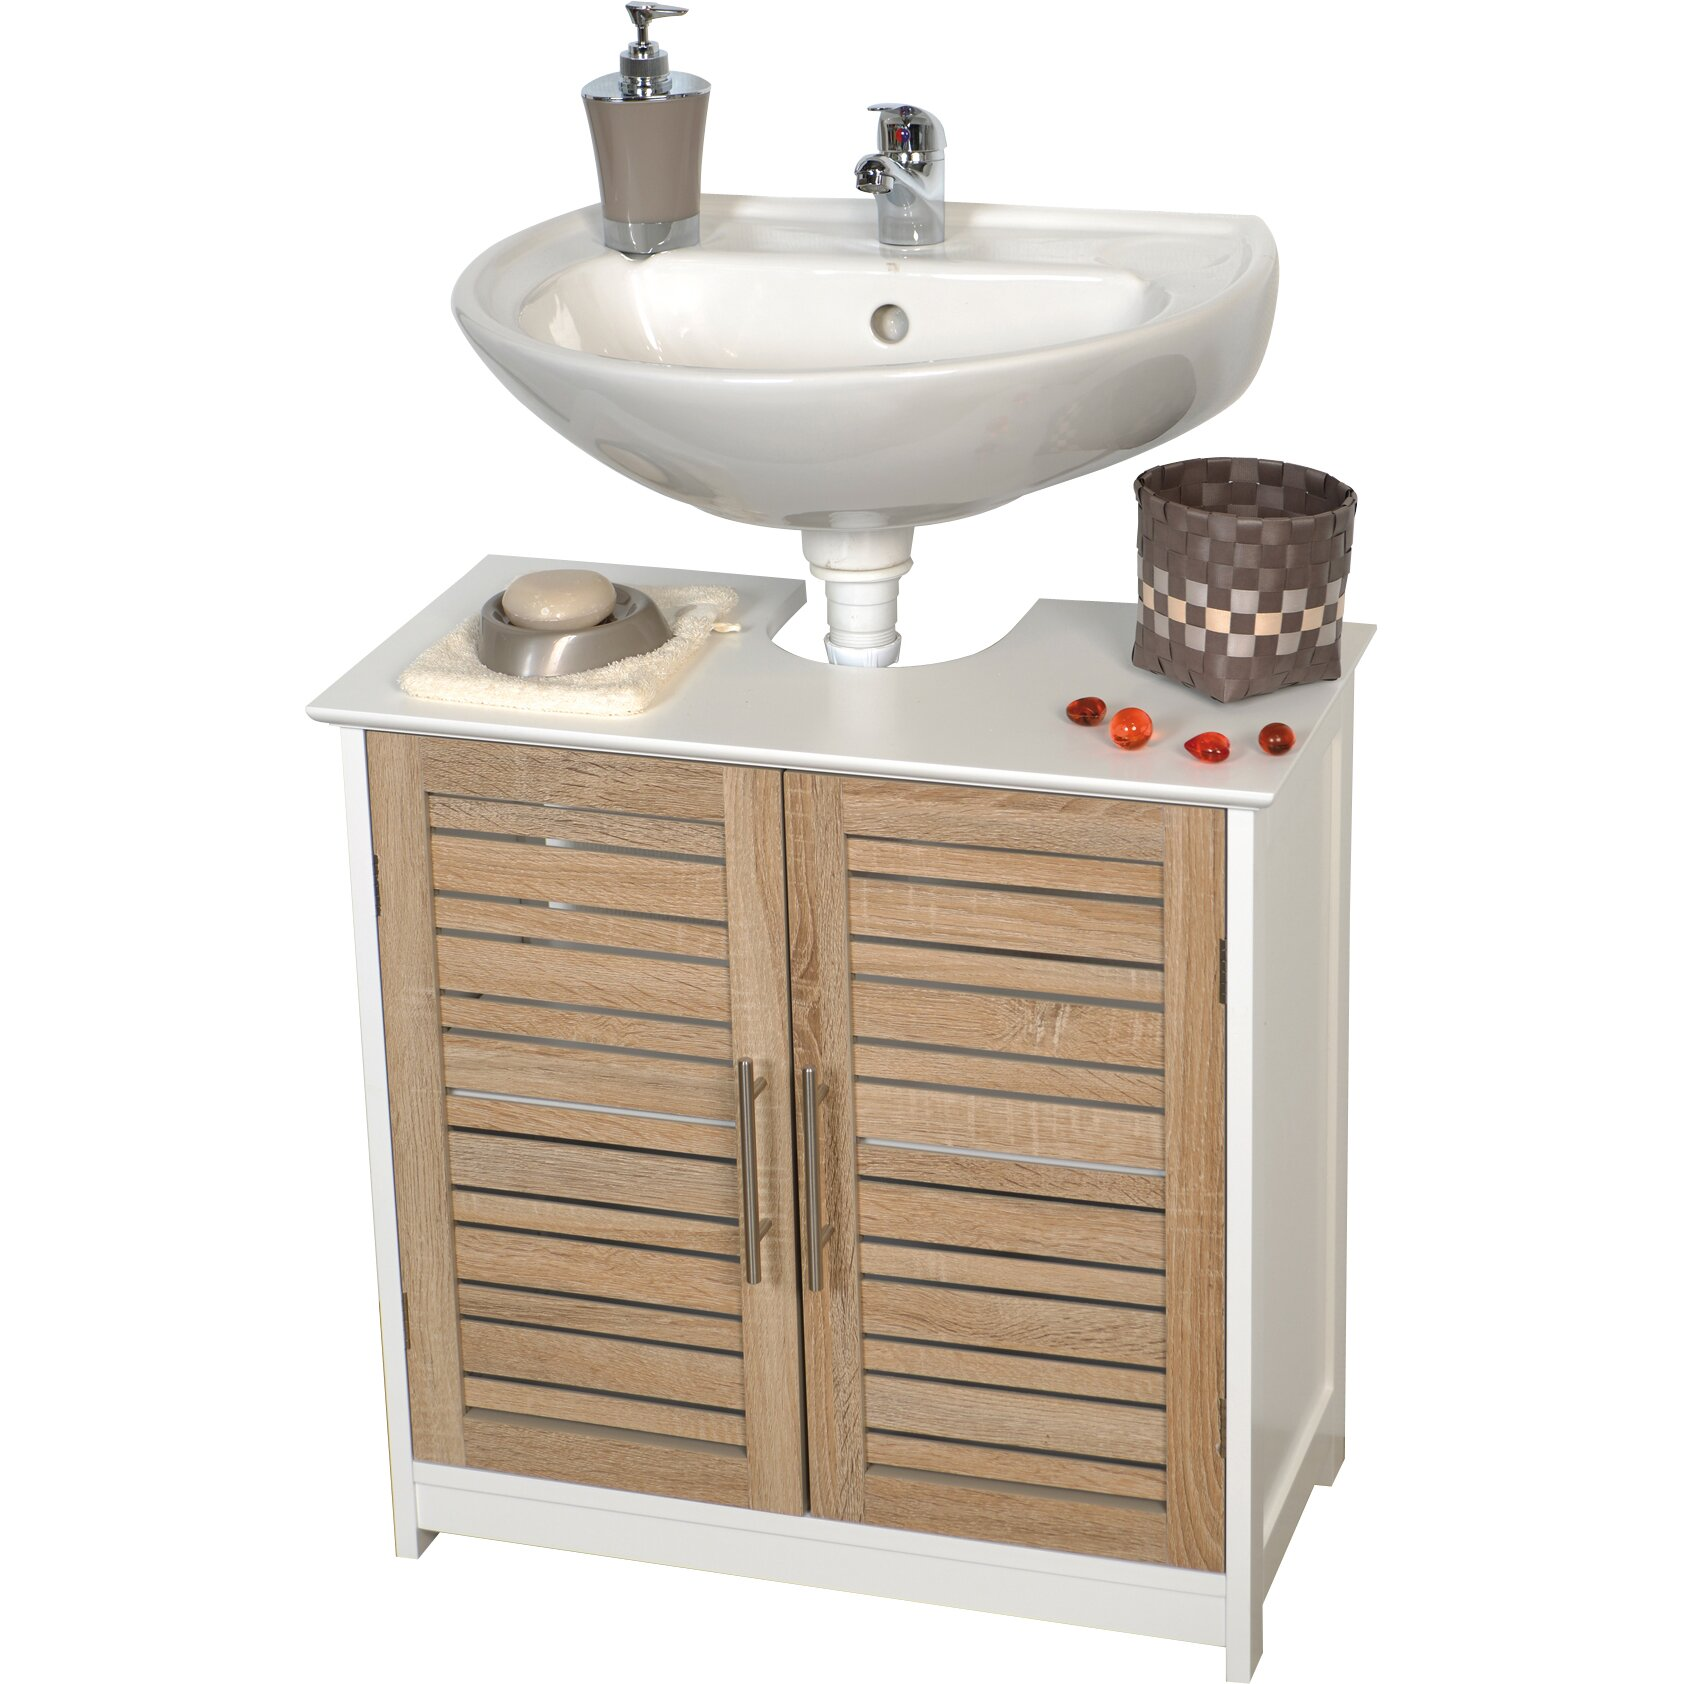 Evideco stockholm 23 6 bath under sink storage vanity - Bathroom vanity under sink organizer ...